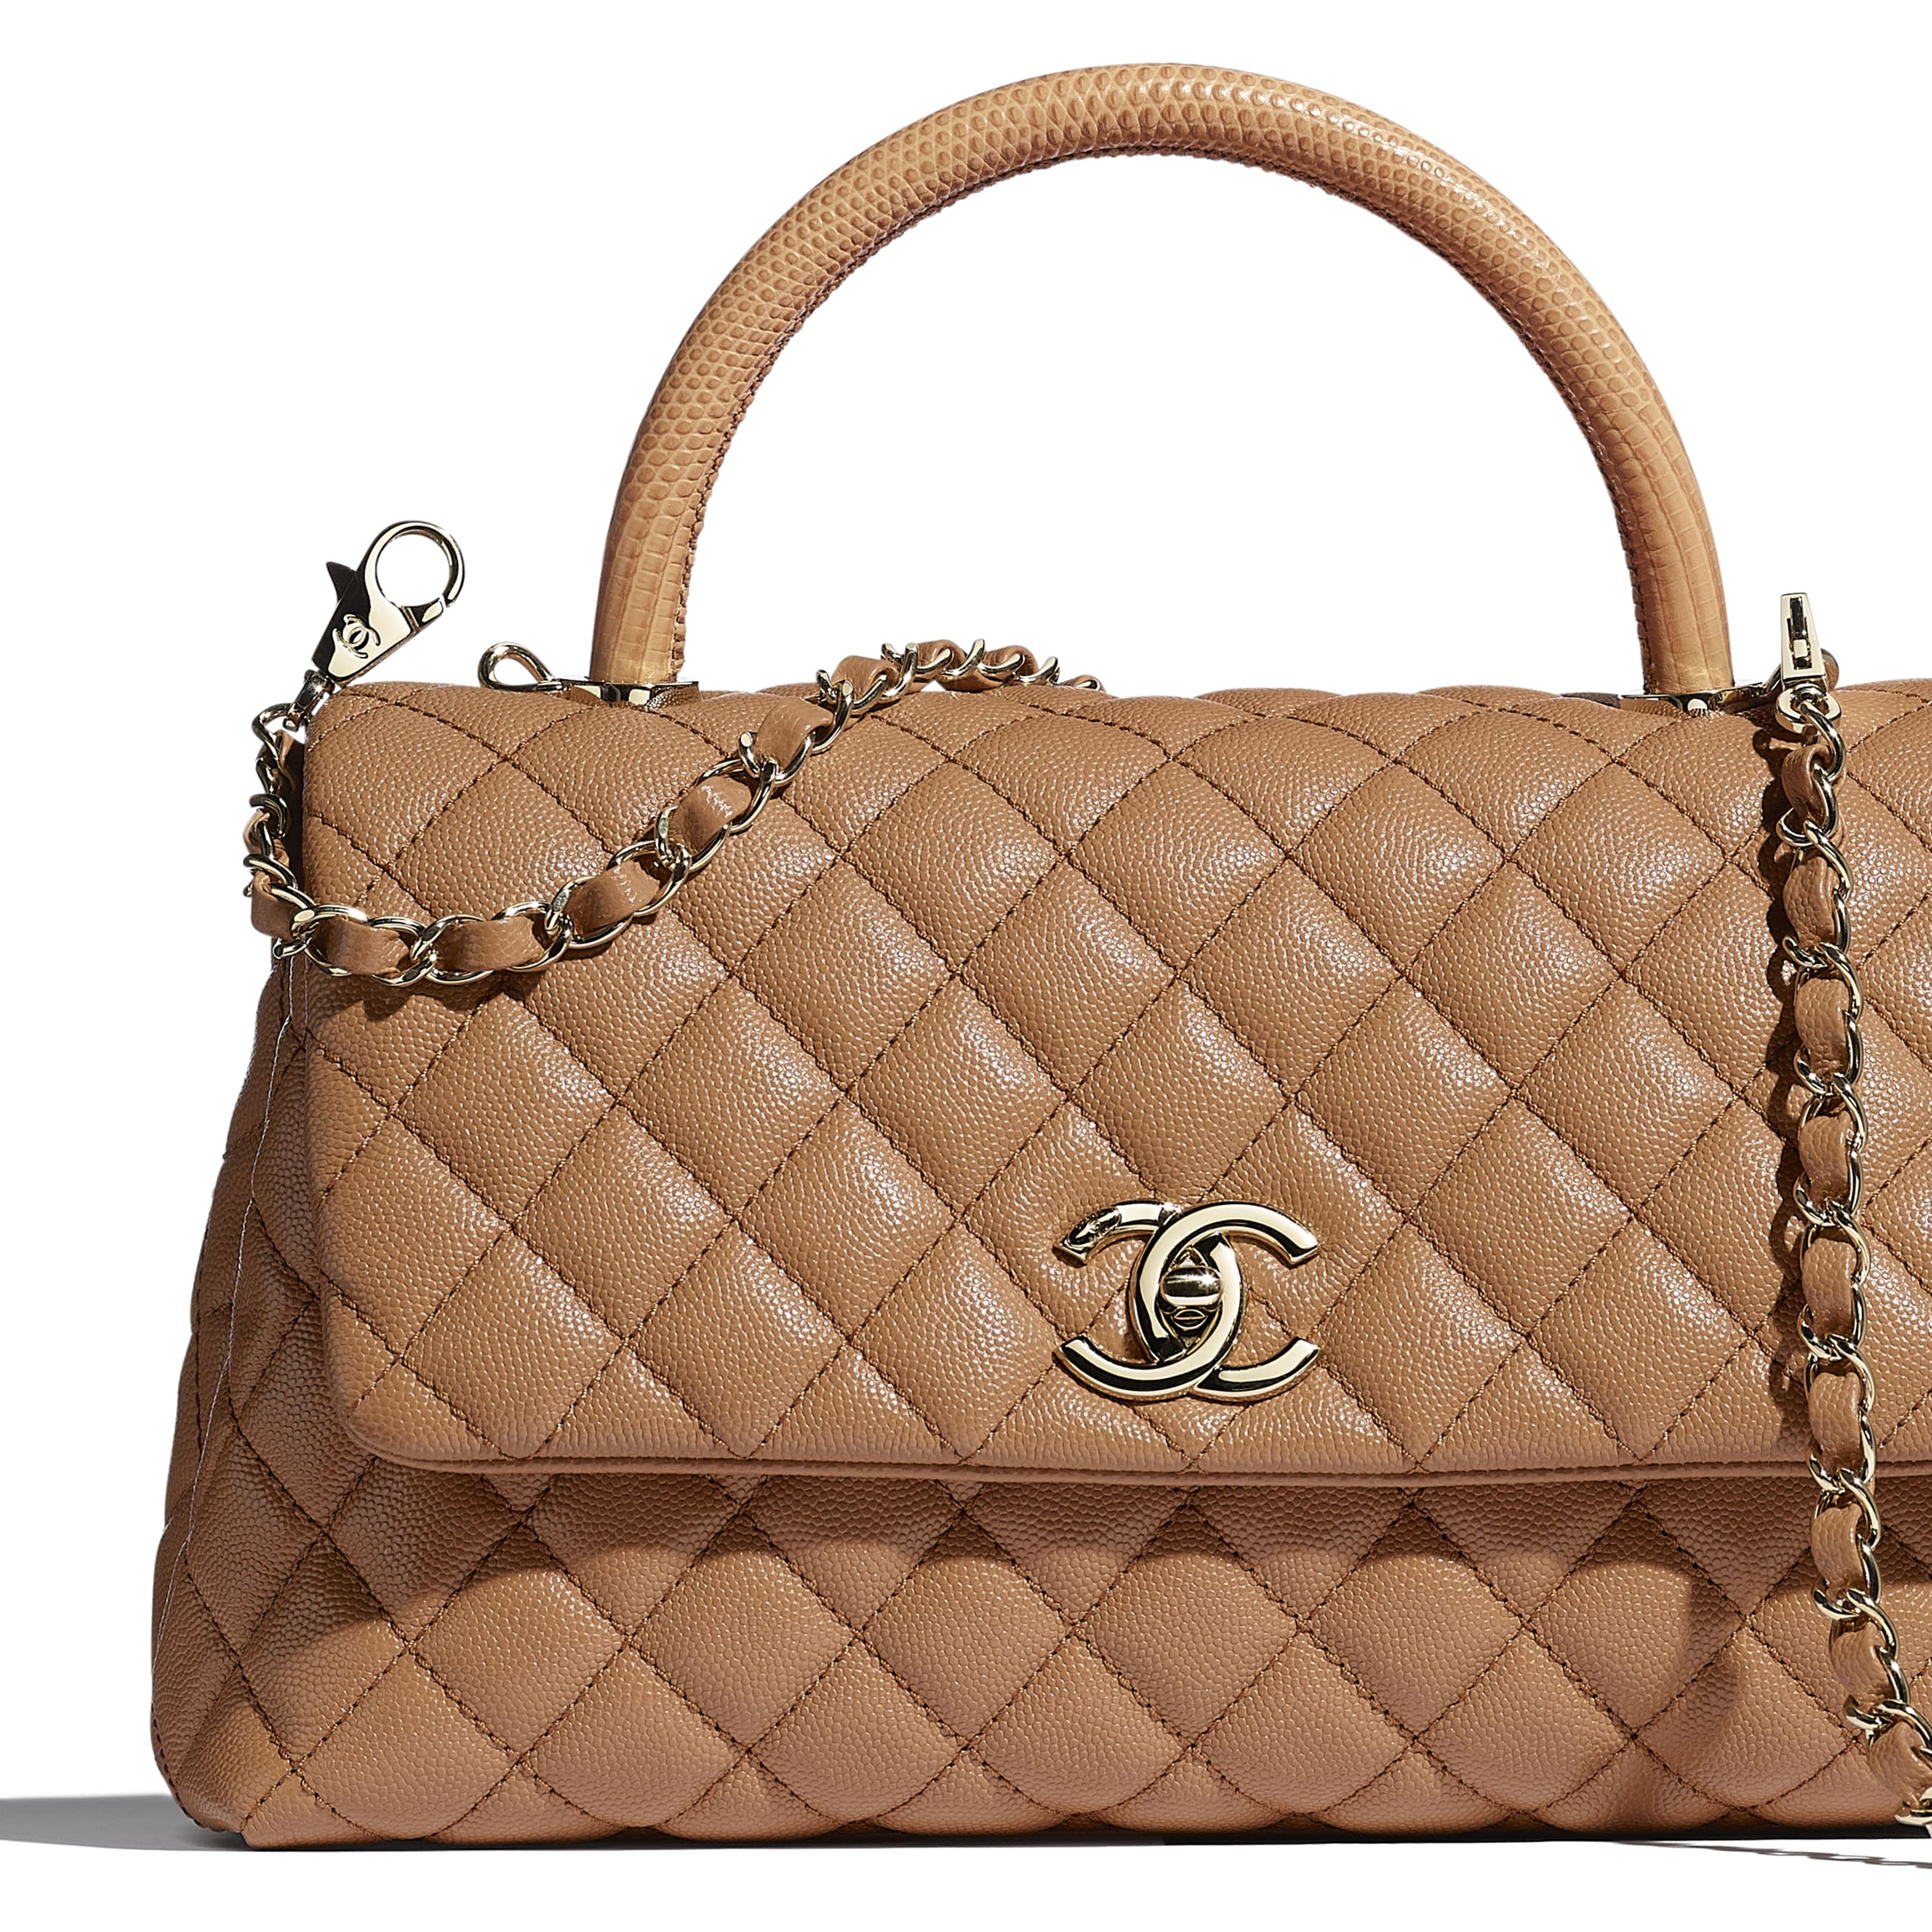 Large Flap Bag With Top Handle - Brown - Grained Calfskin, Lizard Embossed Calfskin & Gold-Tone Metal - CHANEL - Extra view - see standard sized version